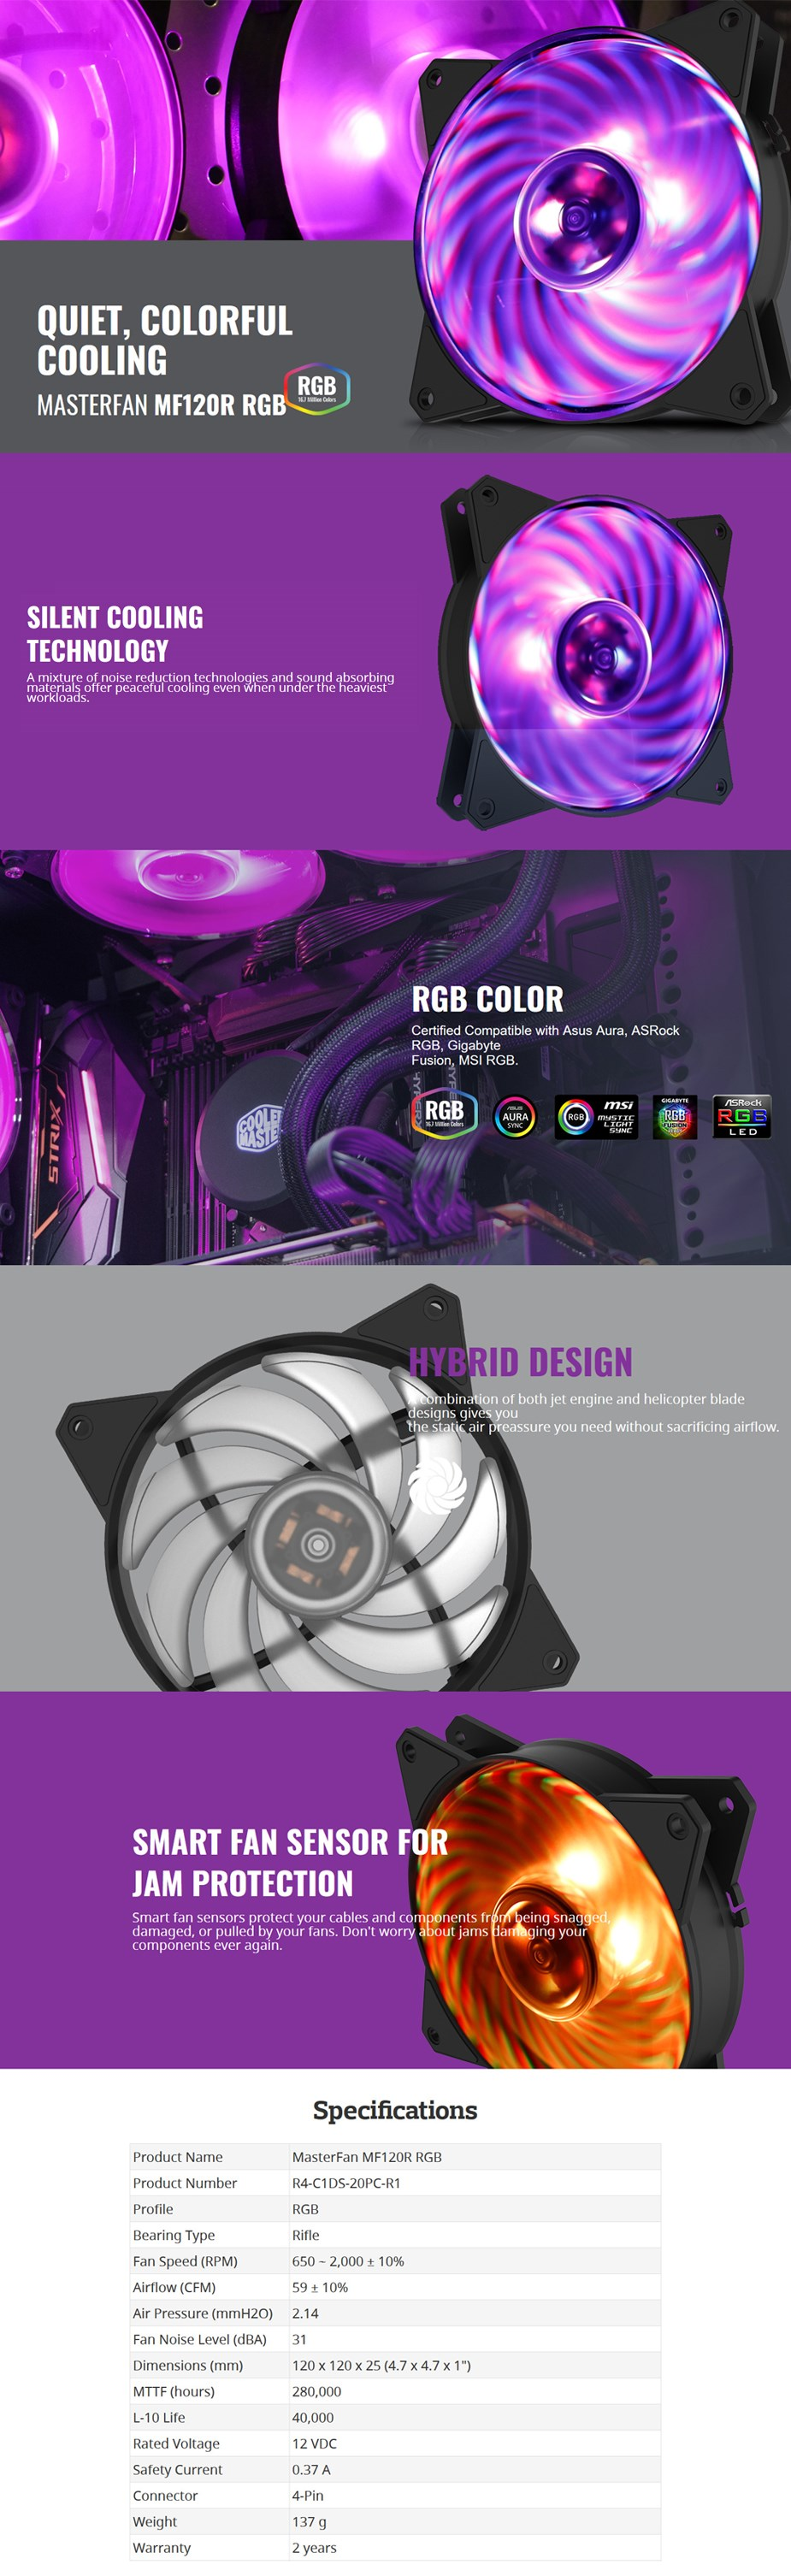 Cooler Master MasterFan MF120R RGB 120mm Fan - Desktop Overview 1